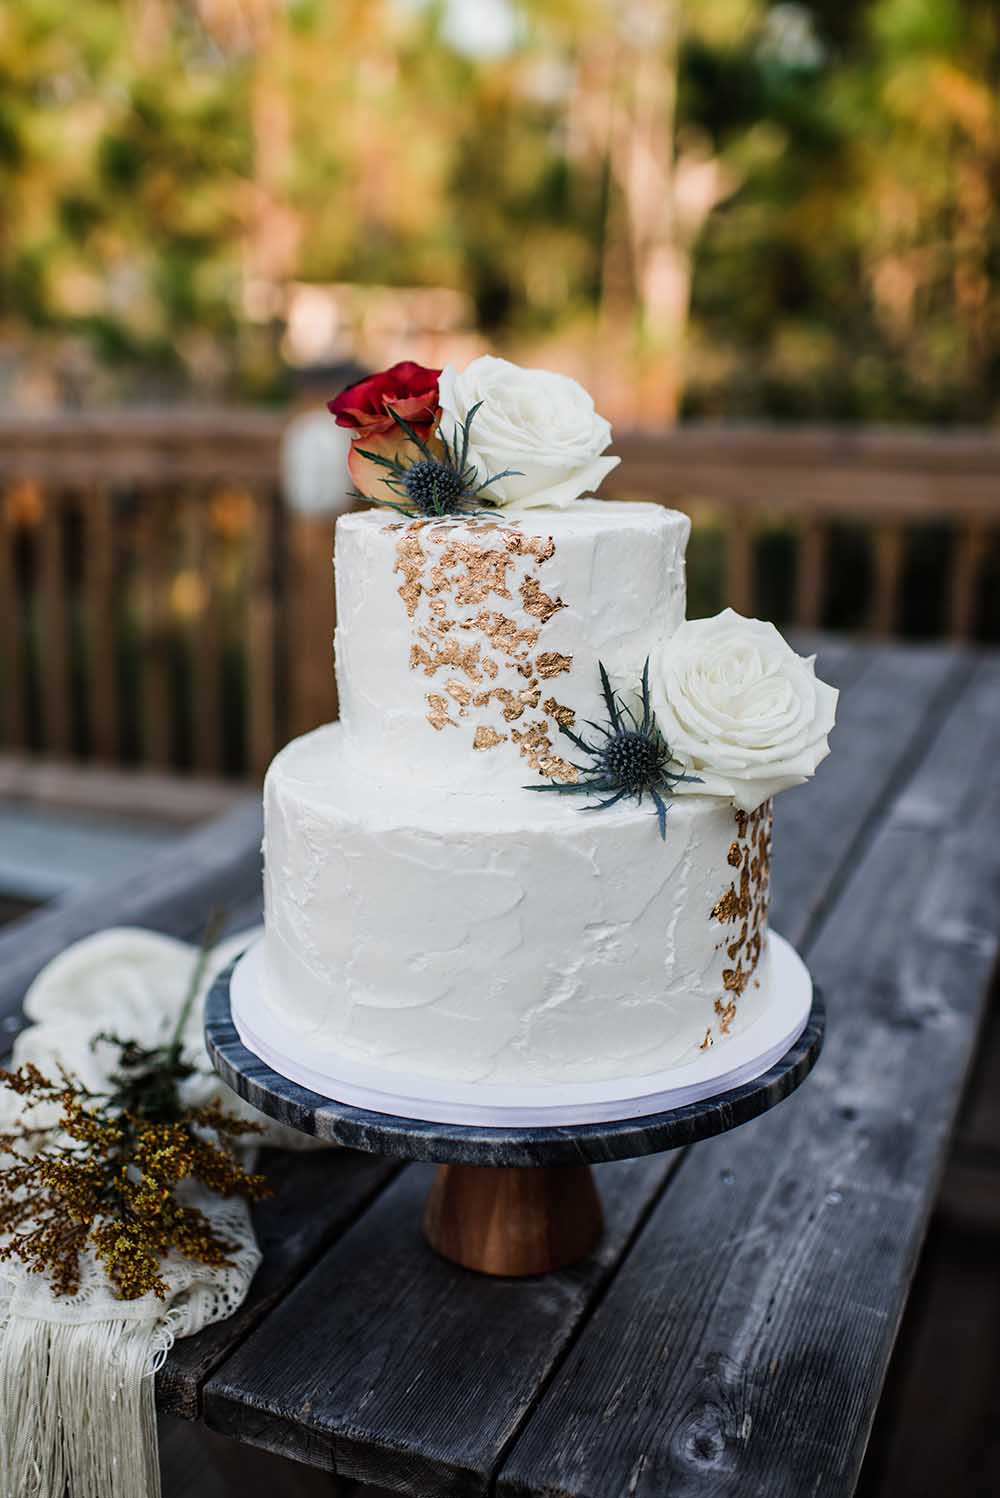 Simple Wedding Cake with Gold Foil | photo by MBM Photography | featured on I Do Y'all